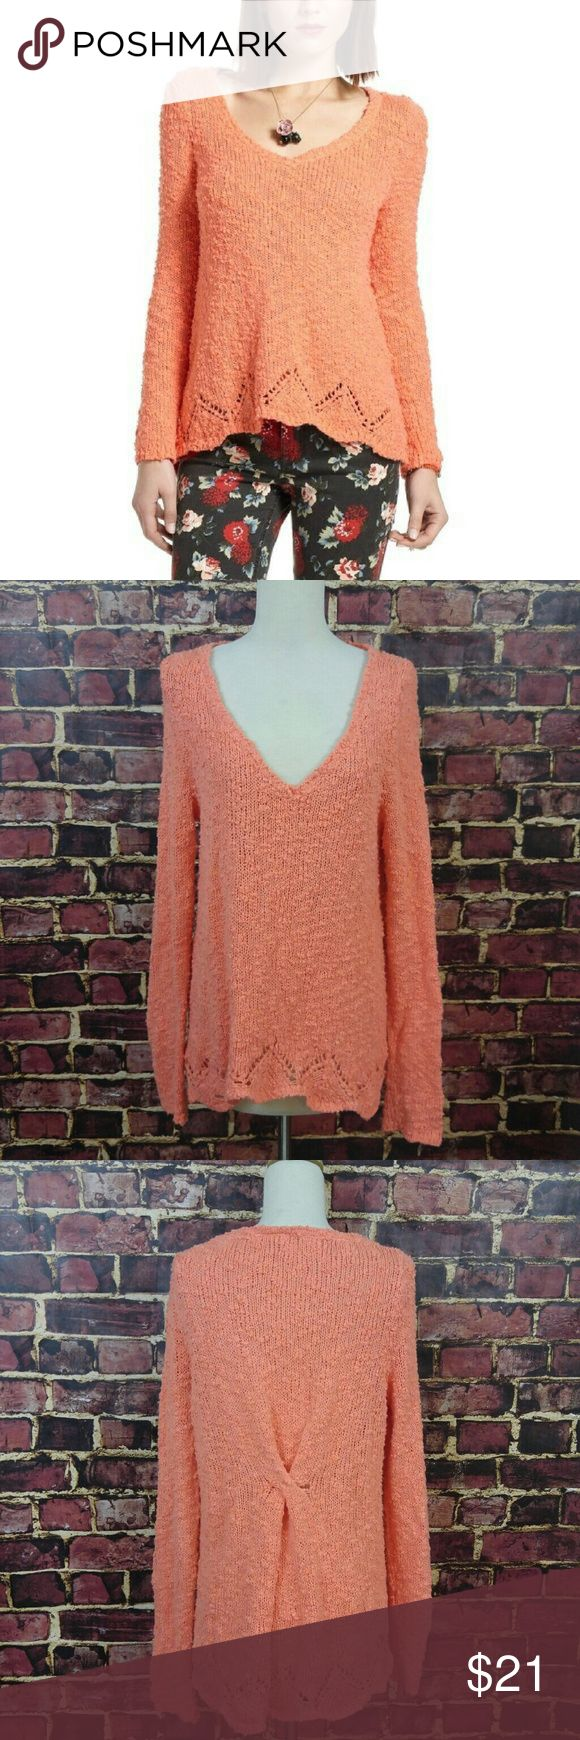 Anthropologie Little Bird Peaked Pointelle Anthropologie by Little Bird Peaked Pointelle Boucle Sweater in Orange. Gently Worn.   Please note small hole in back where the twist style is located see last picture. Price reduced due to this flaw.  Bust - 19  Length - 22 Anthropologie Sweaters